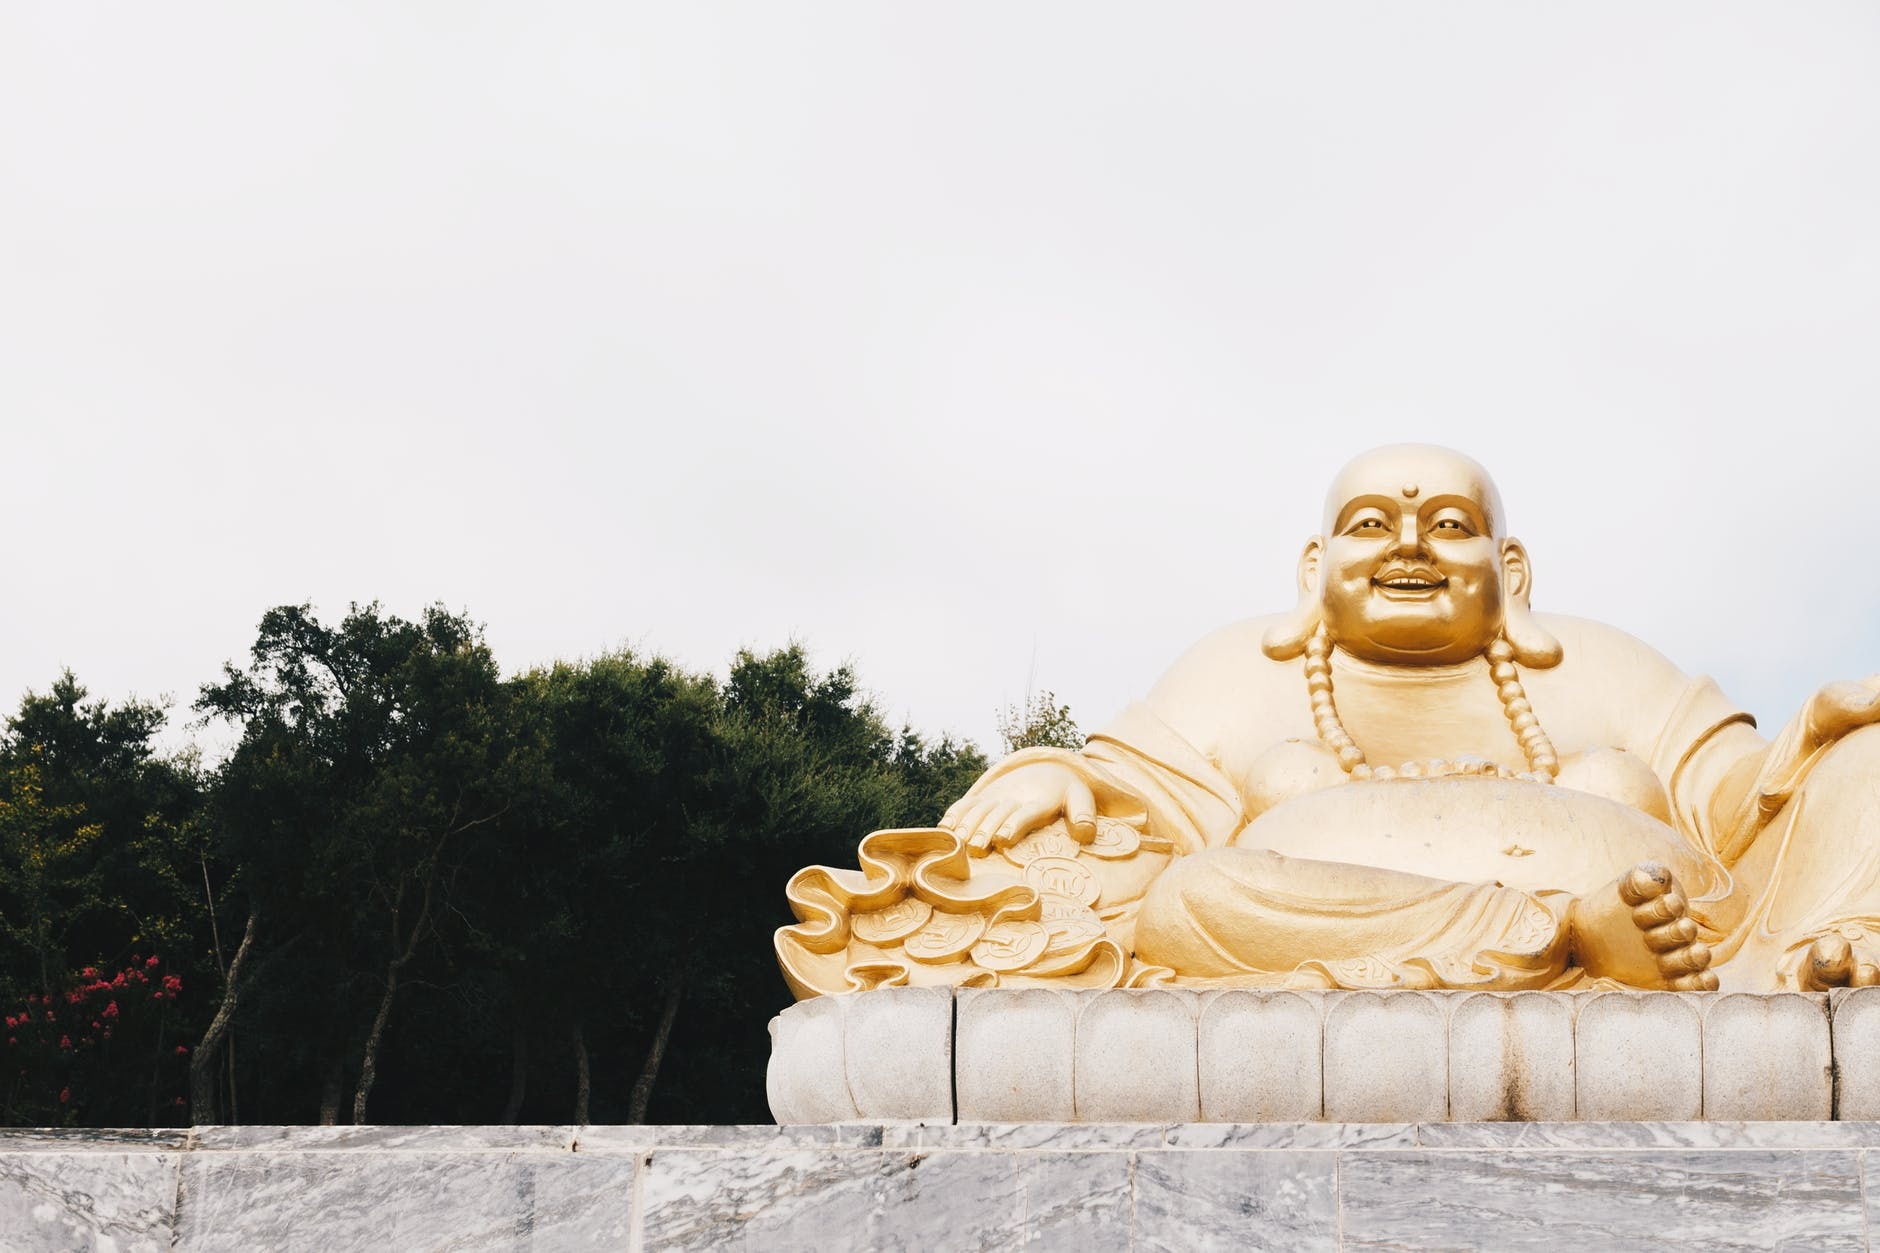 laughing-buddha-no-to-give-as-a-gift